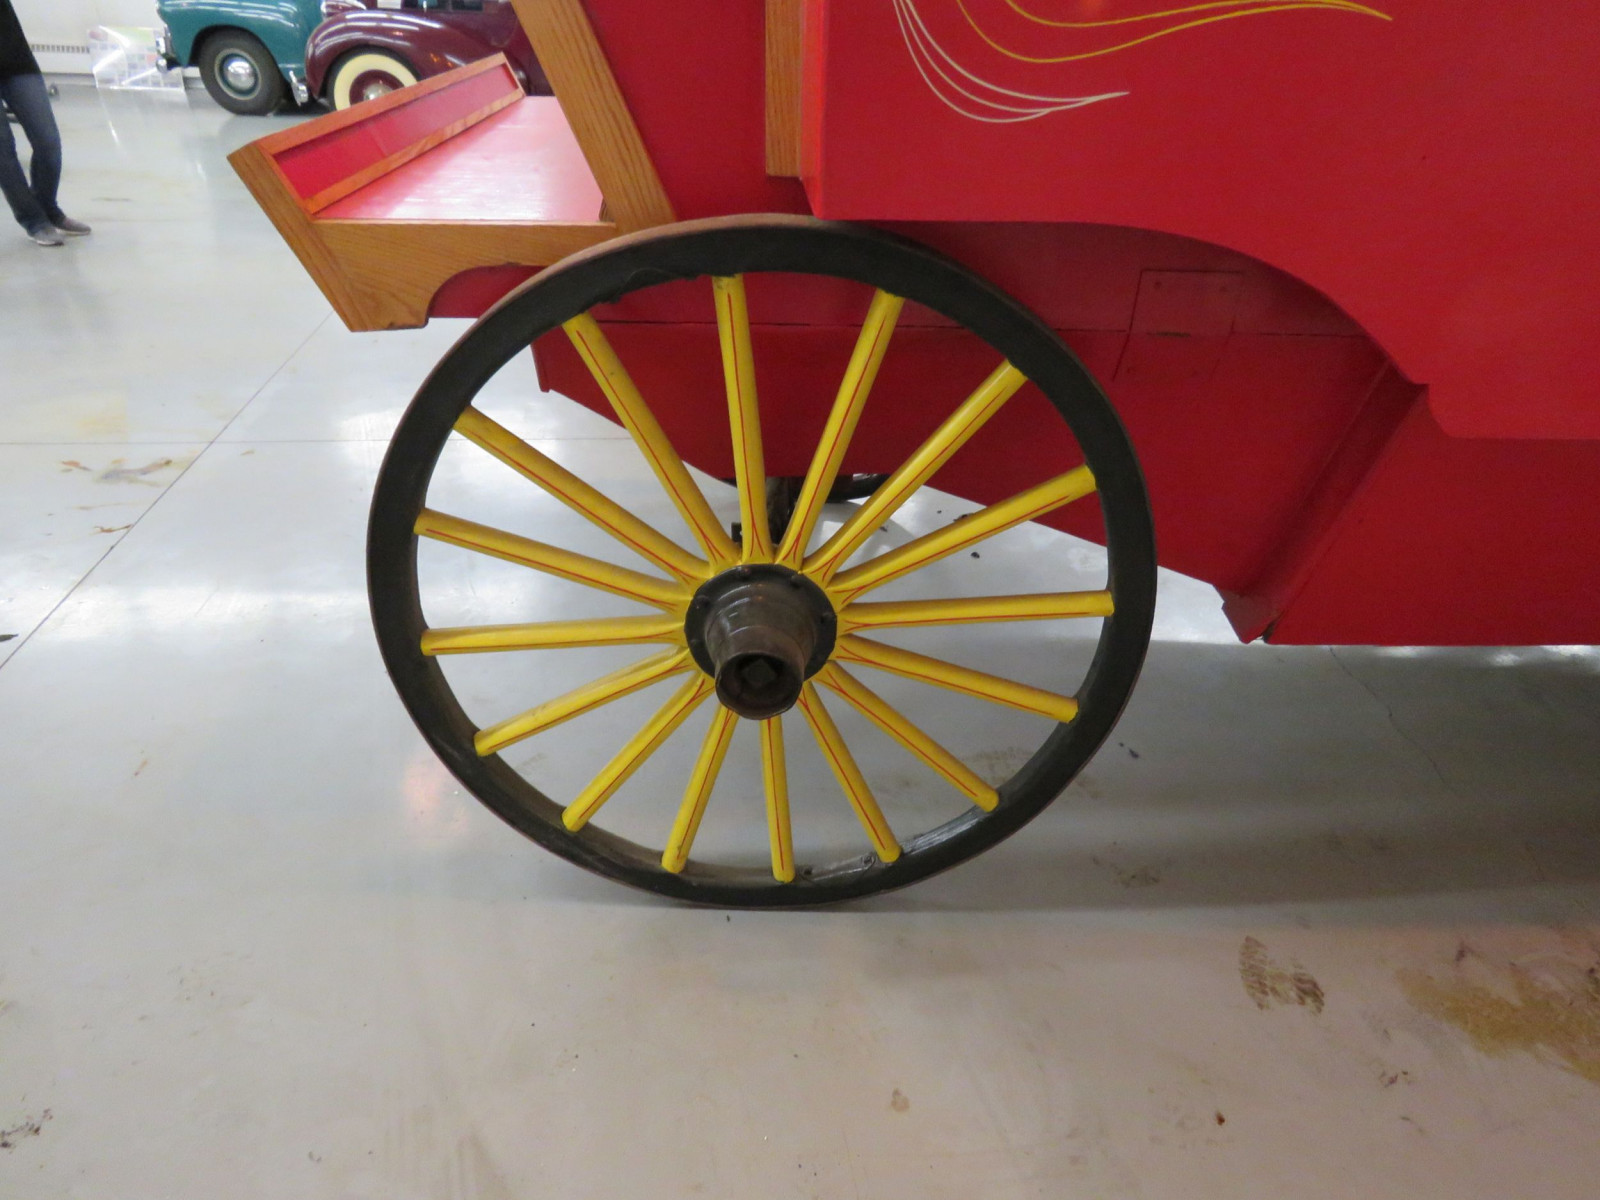 Restored Horse Drawn Popcorn Wagon - Image 4